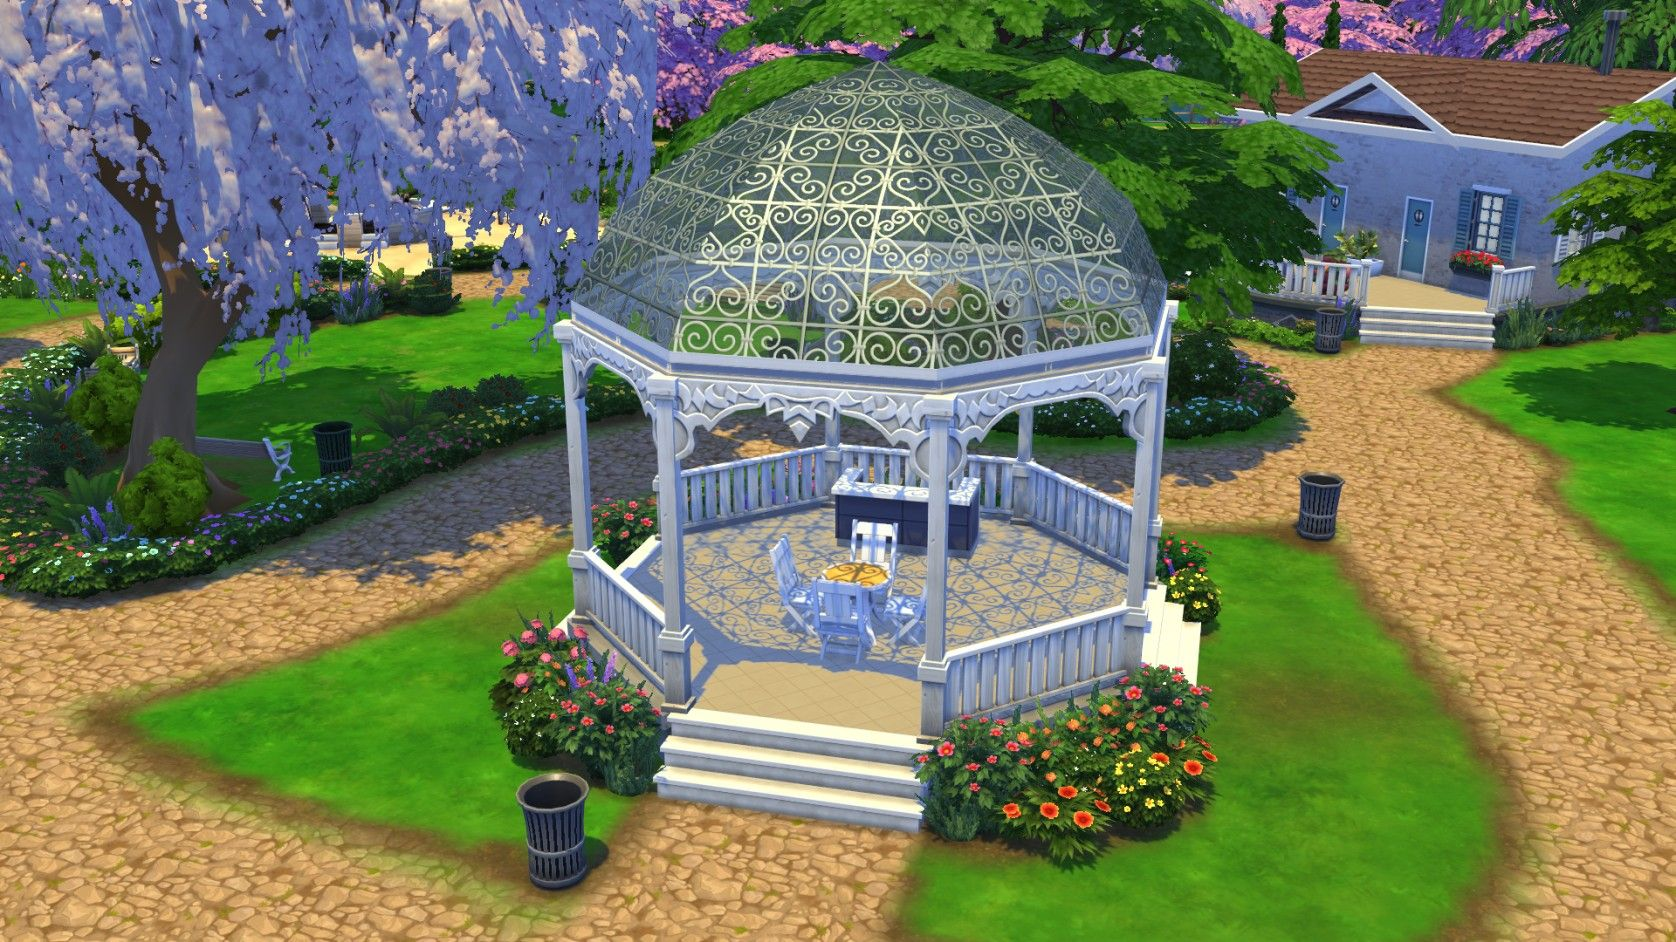 Pin By Jennifer Bocox On Just Yes Sims House Sims Building Sims 4 Garden Ideas